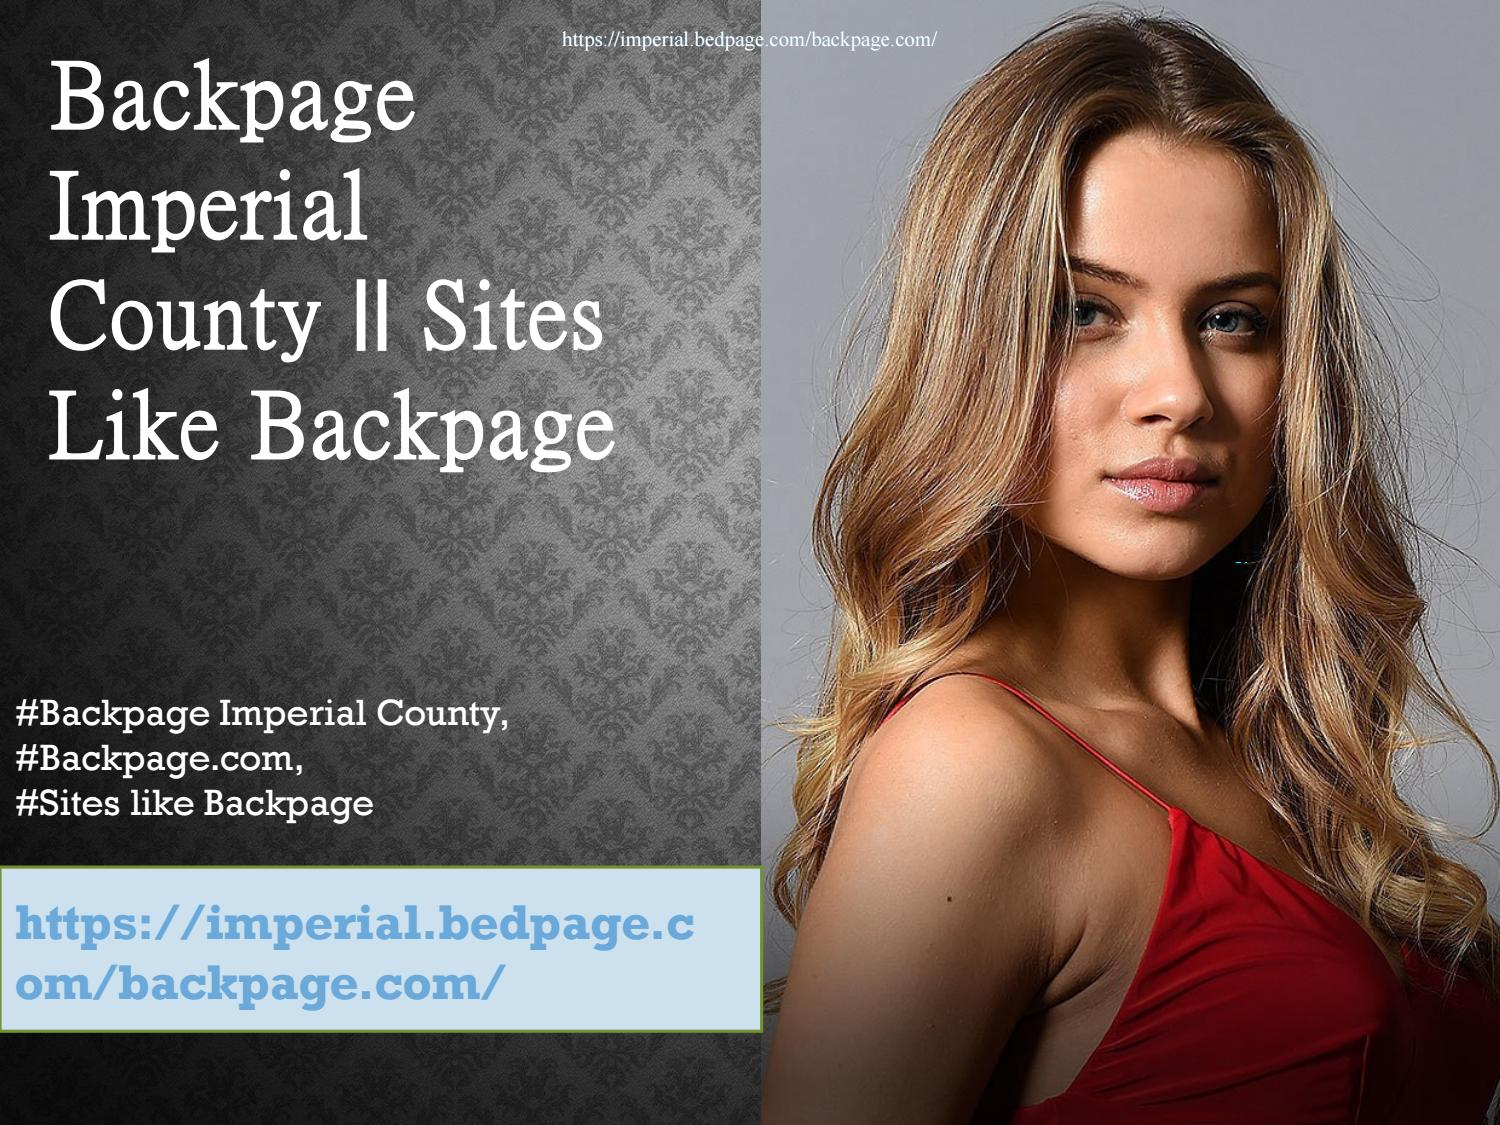 Backpage Imperial County Sites Like Backpage By Atlanta Backpage Issuu